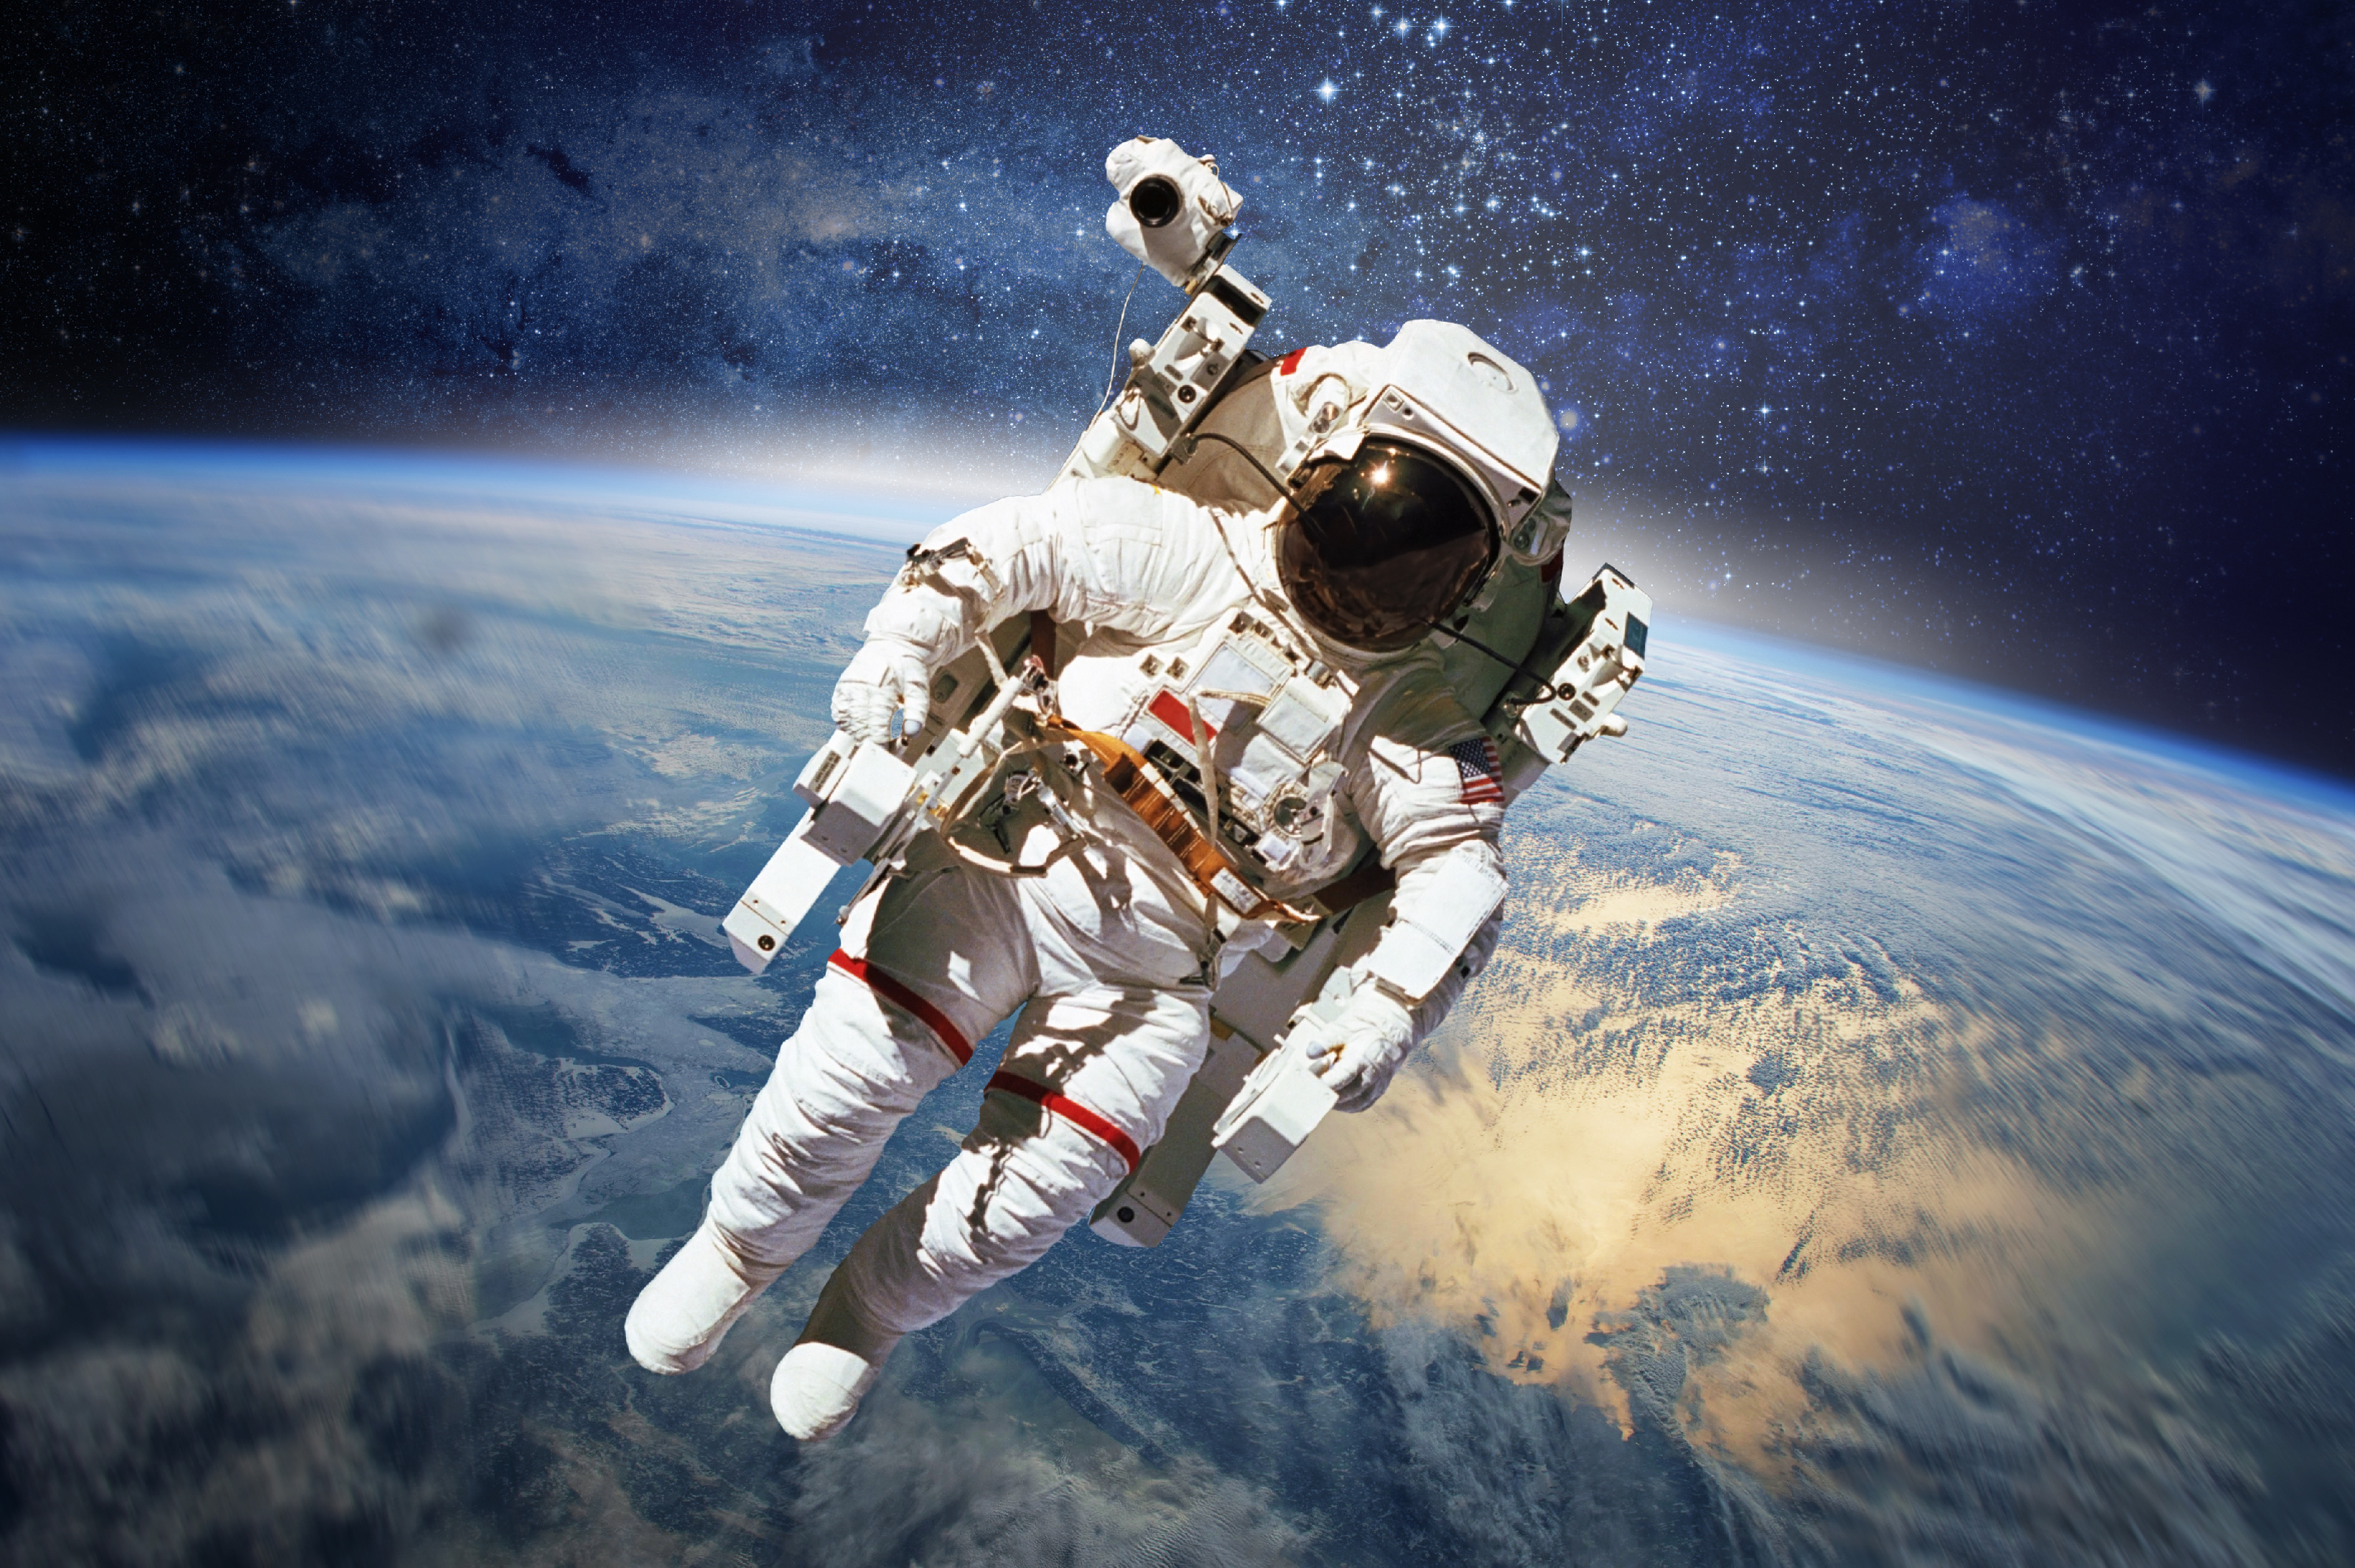 astronauts after being in space - photo #29